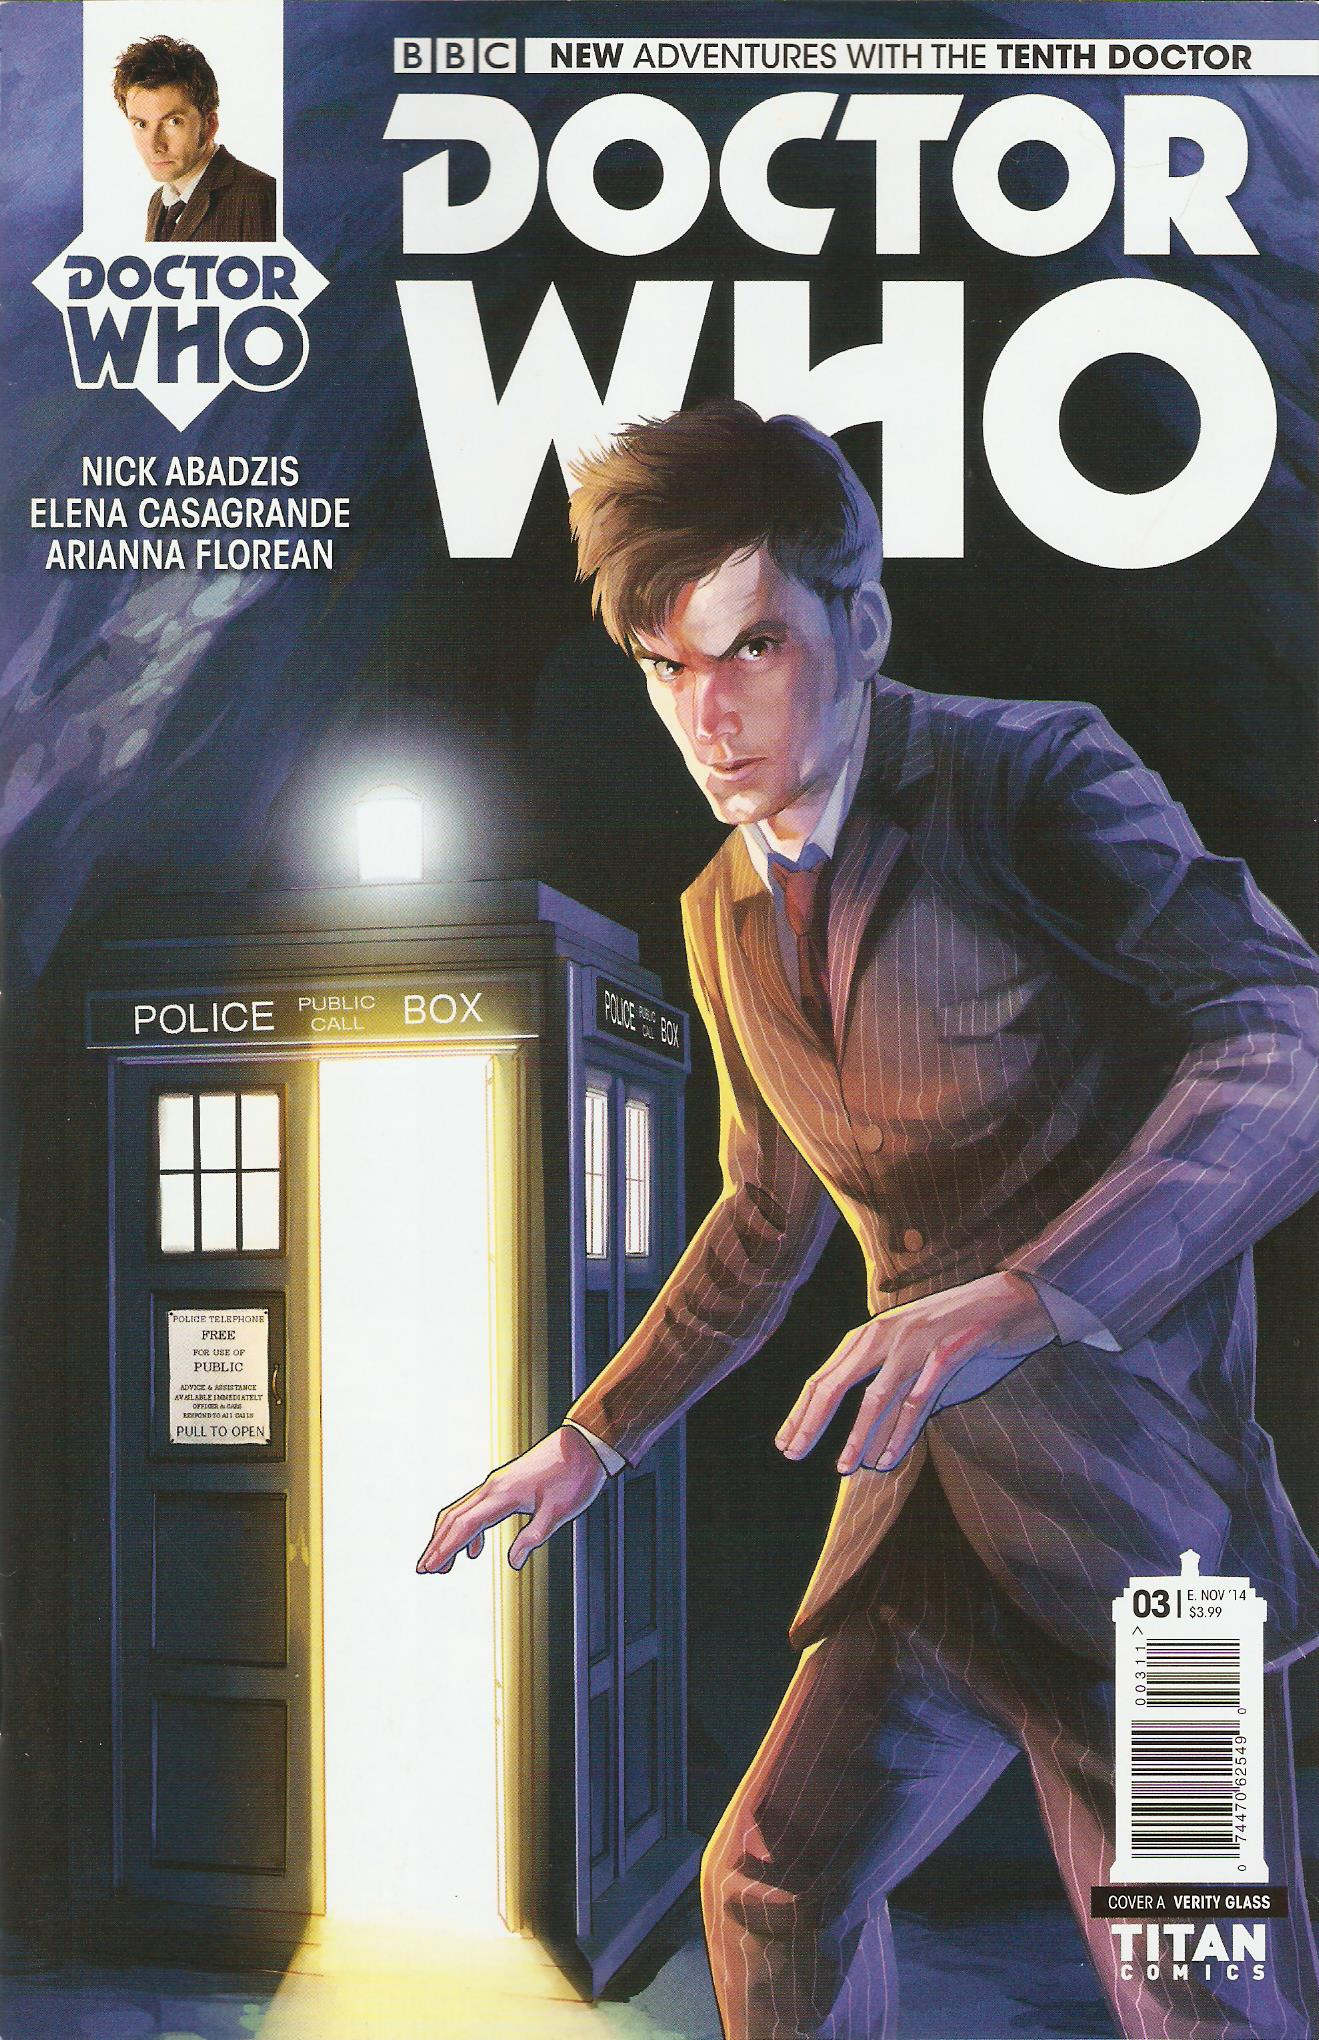 Tenth doctor issue 3a